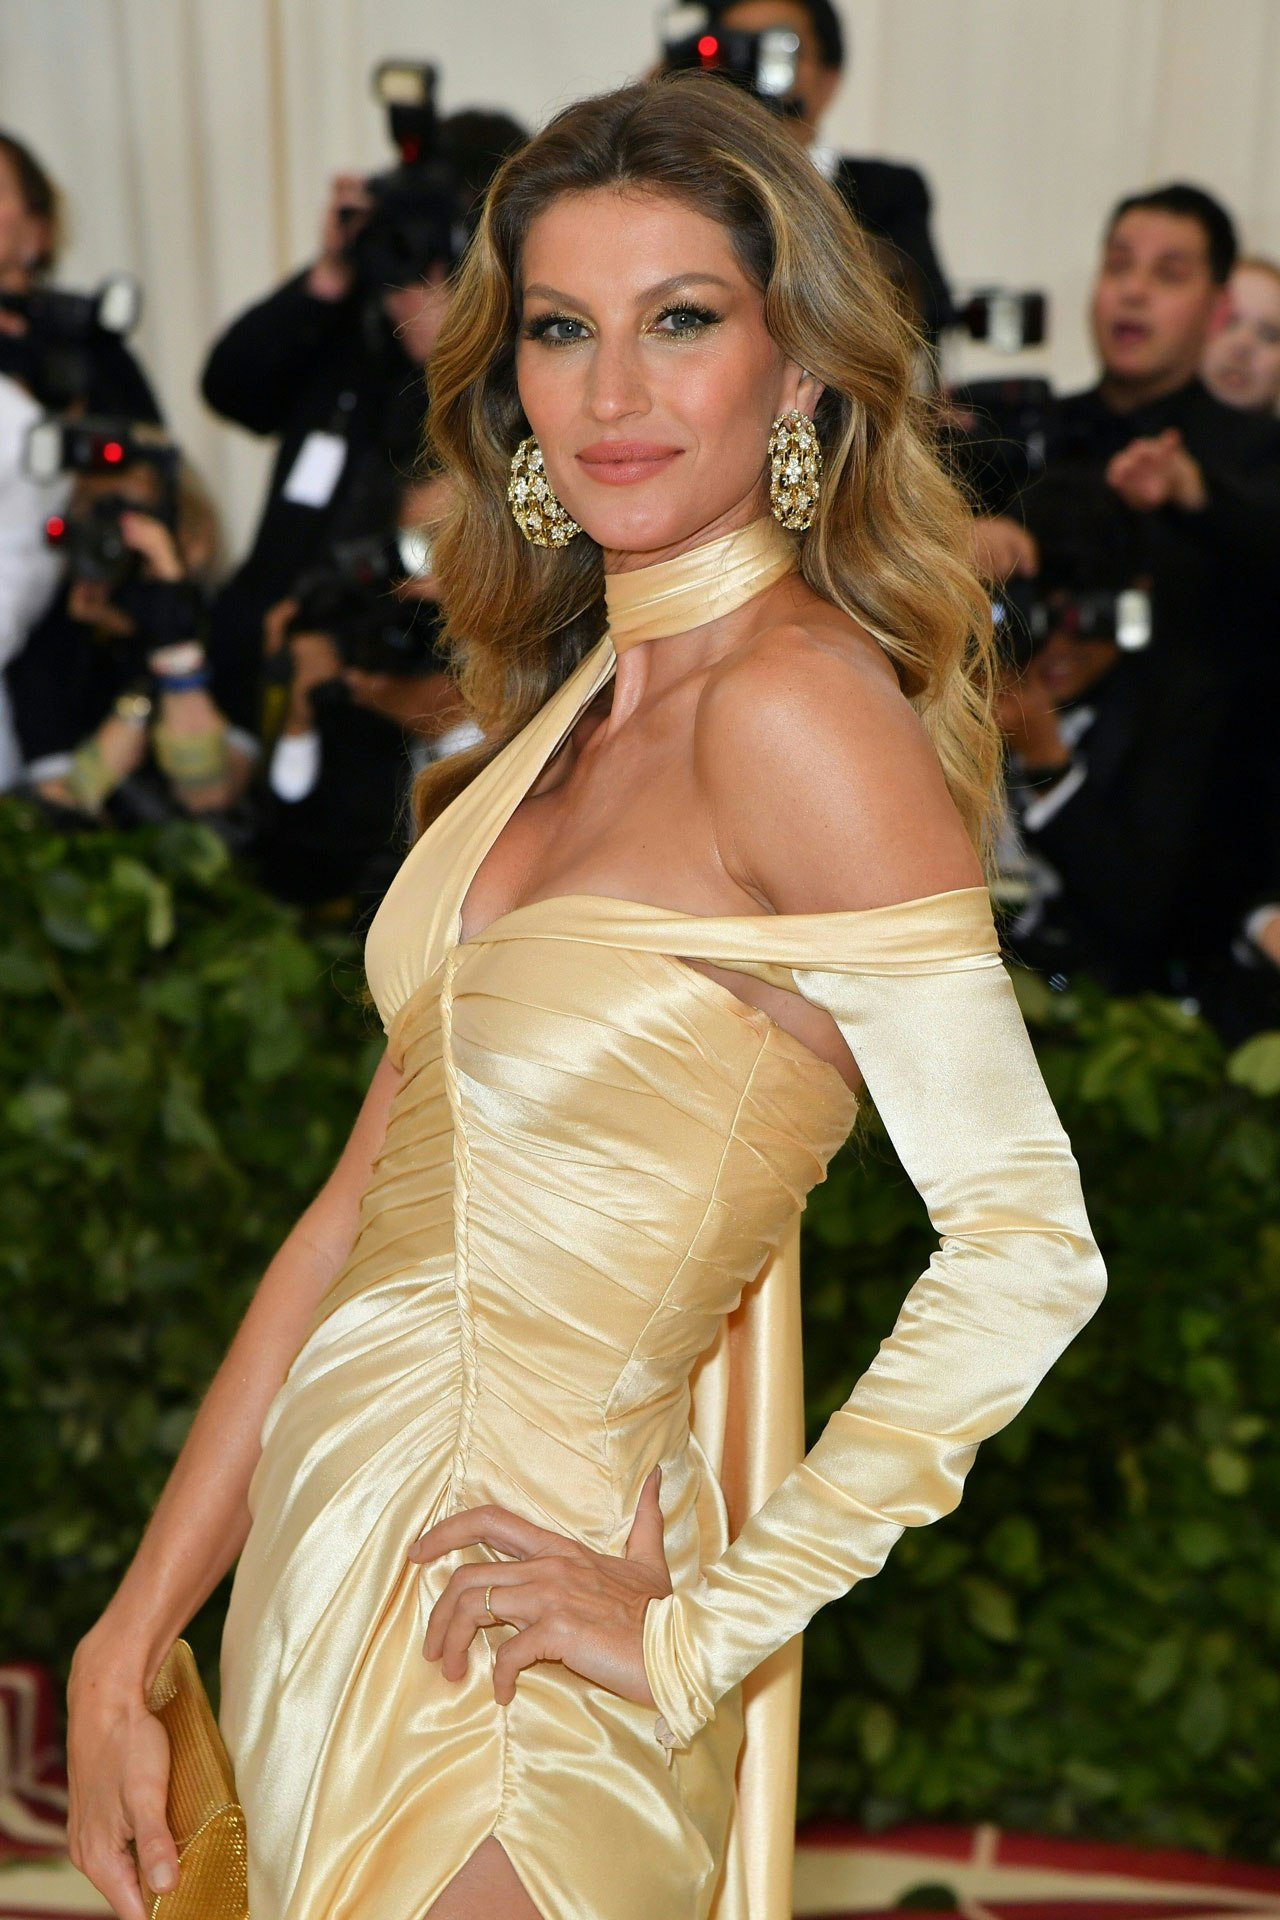 Gisele Bündchen on quitting Leonardo DiCaprio and dealing with panic attacks